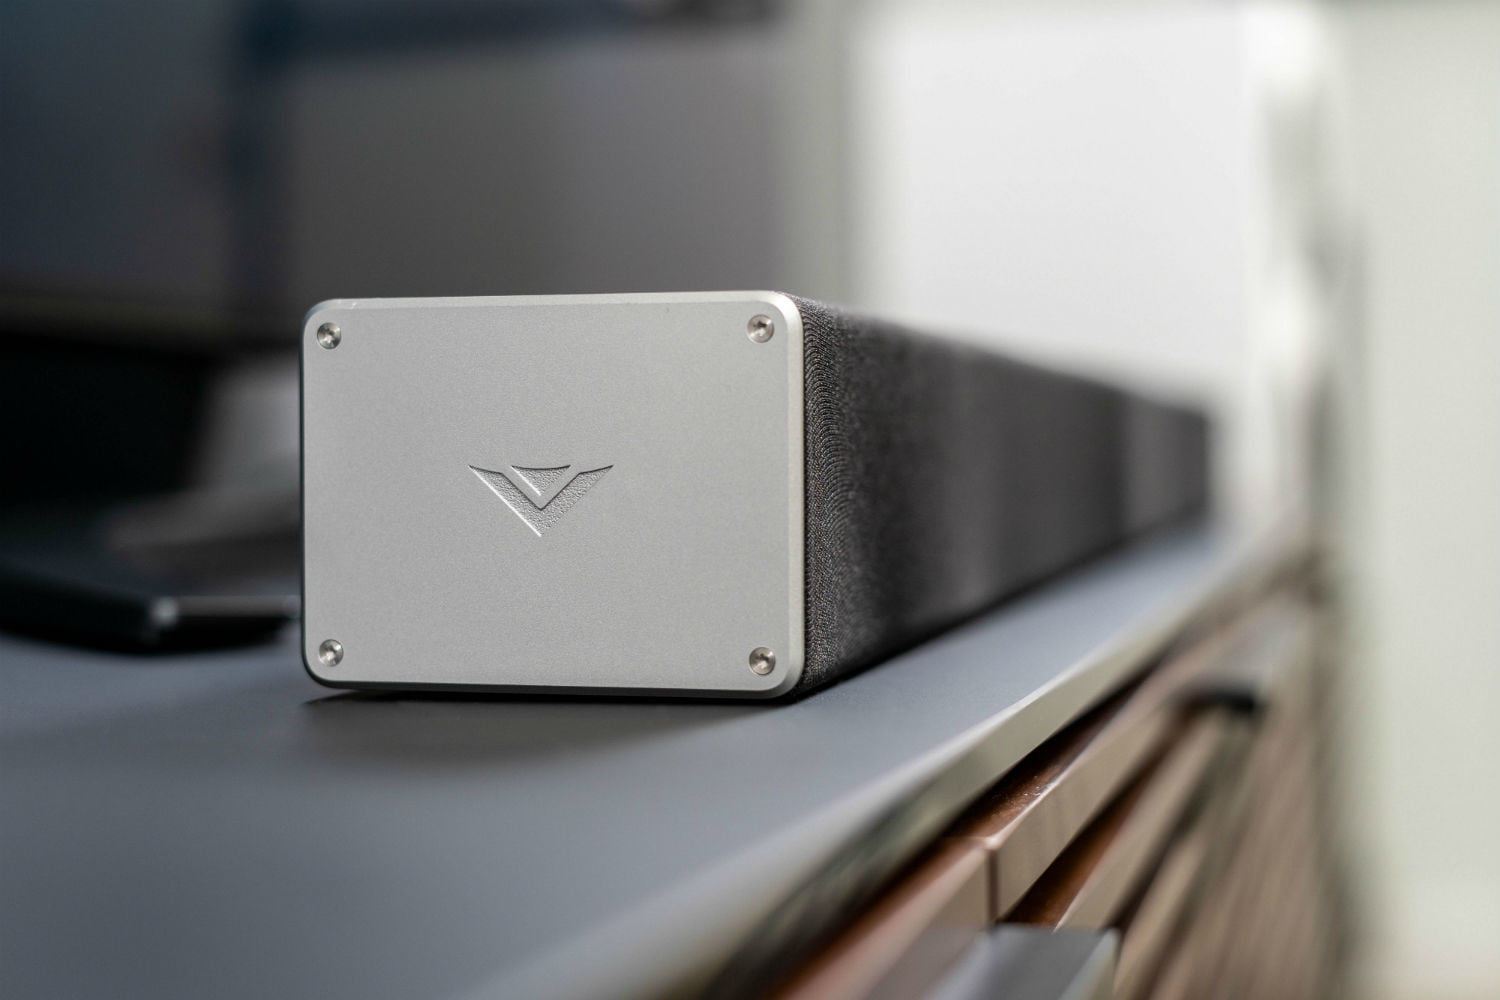 Vizio SB36514-G6 5.1.4-channel Dolby Atmos soundbar review